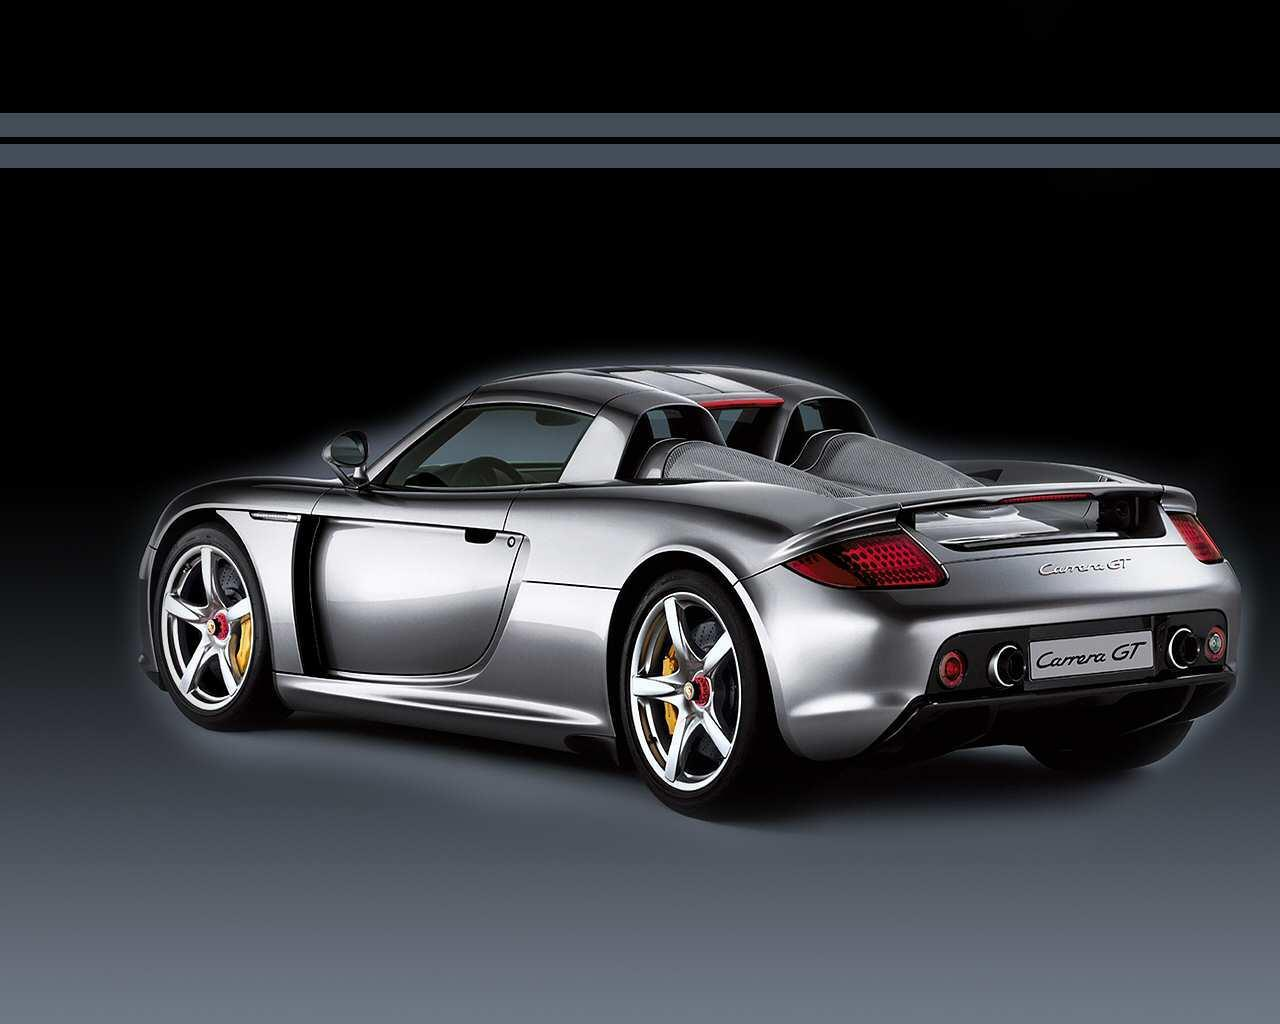 Porsche carrera GT Car HD Wallpaper